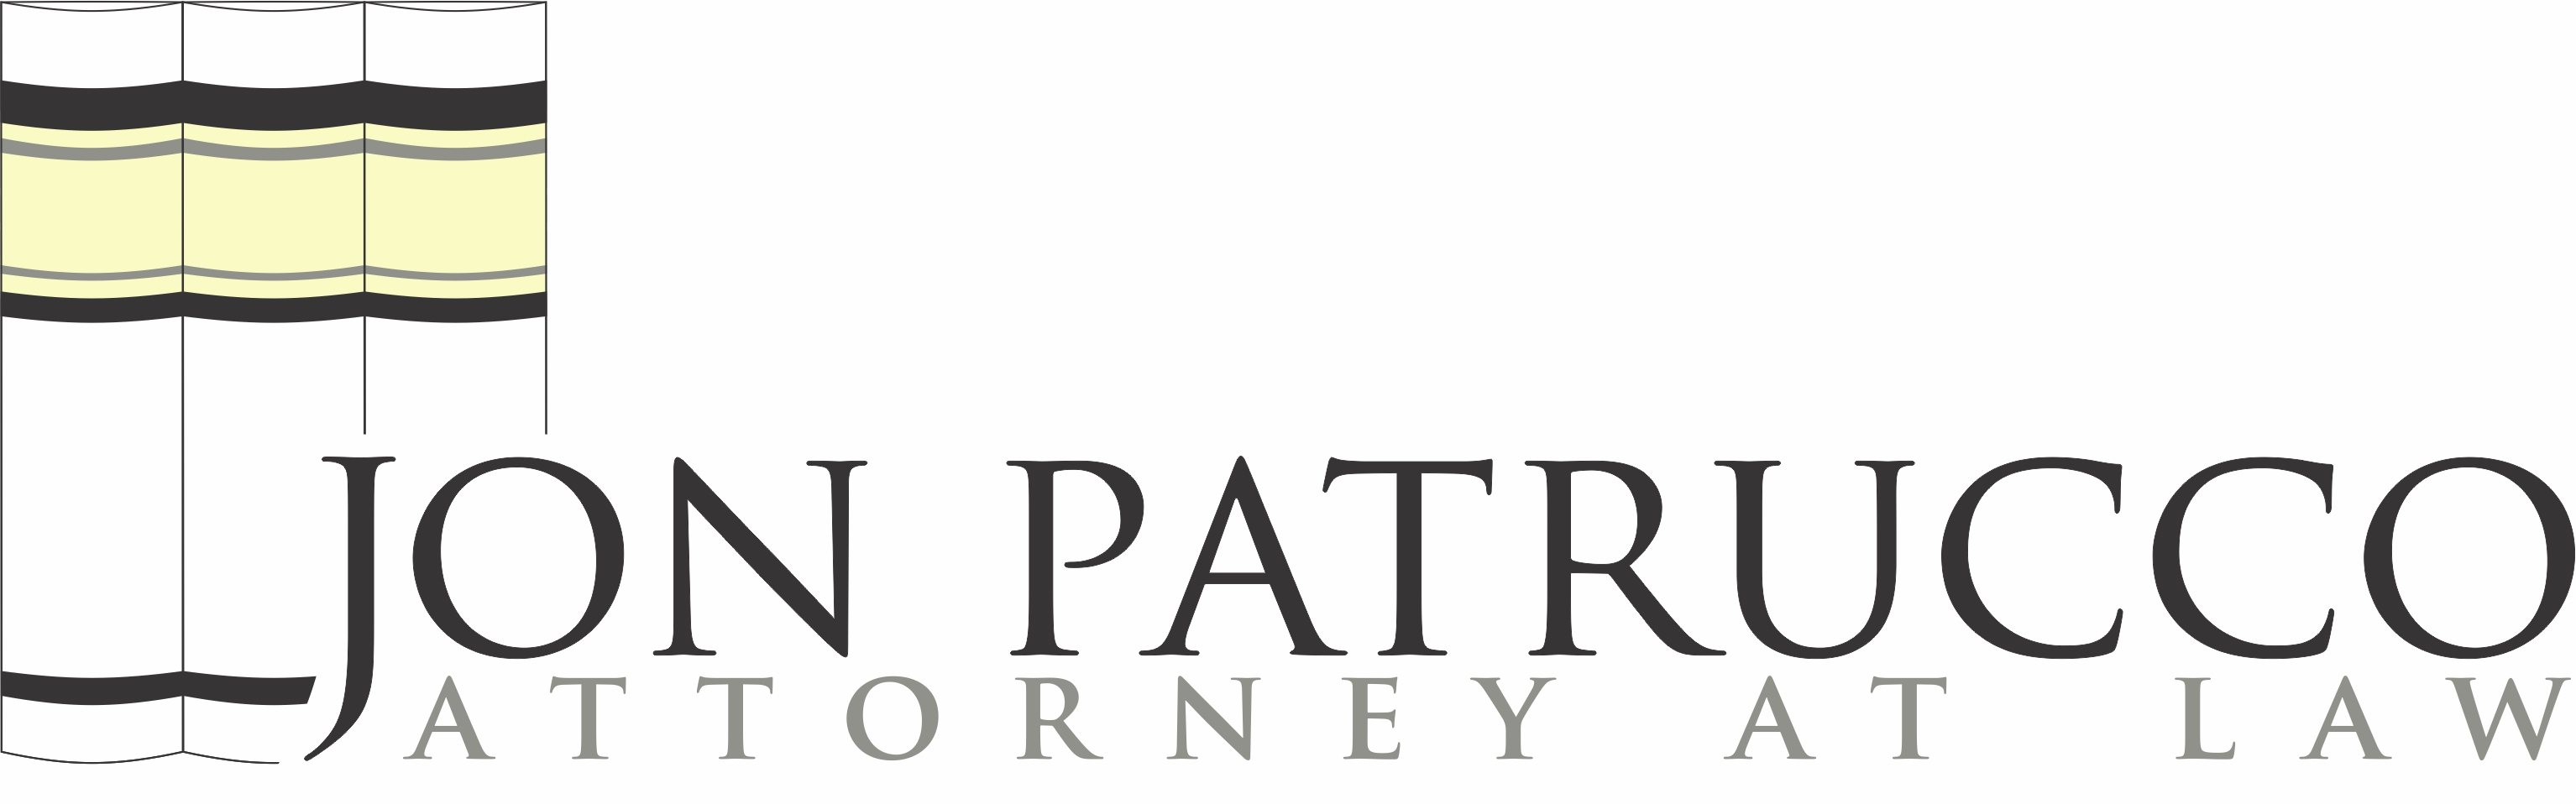 Jon Patrucco | Attorney at Law | Meriden, CT  Mobile Retina Logo